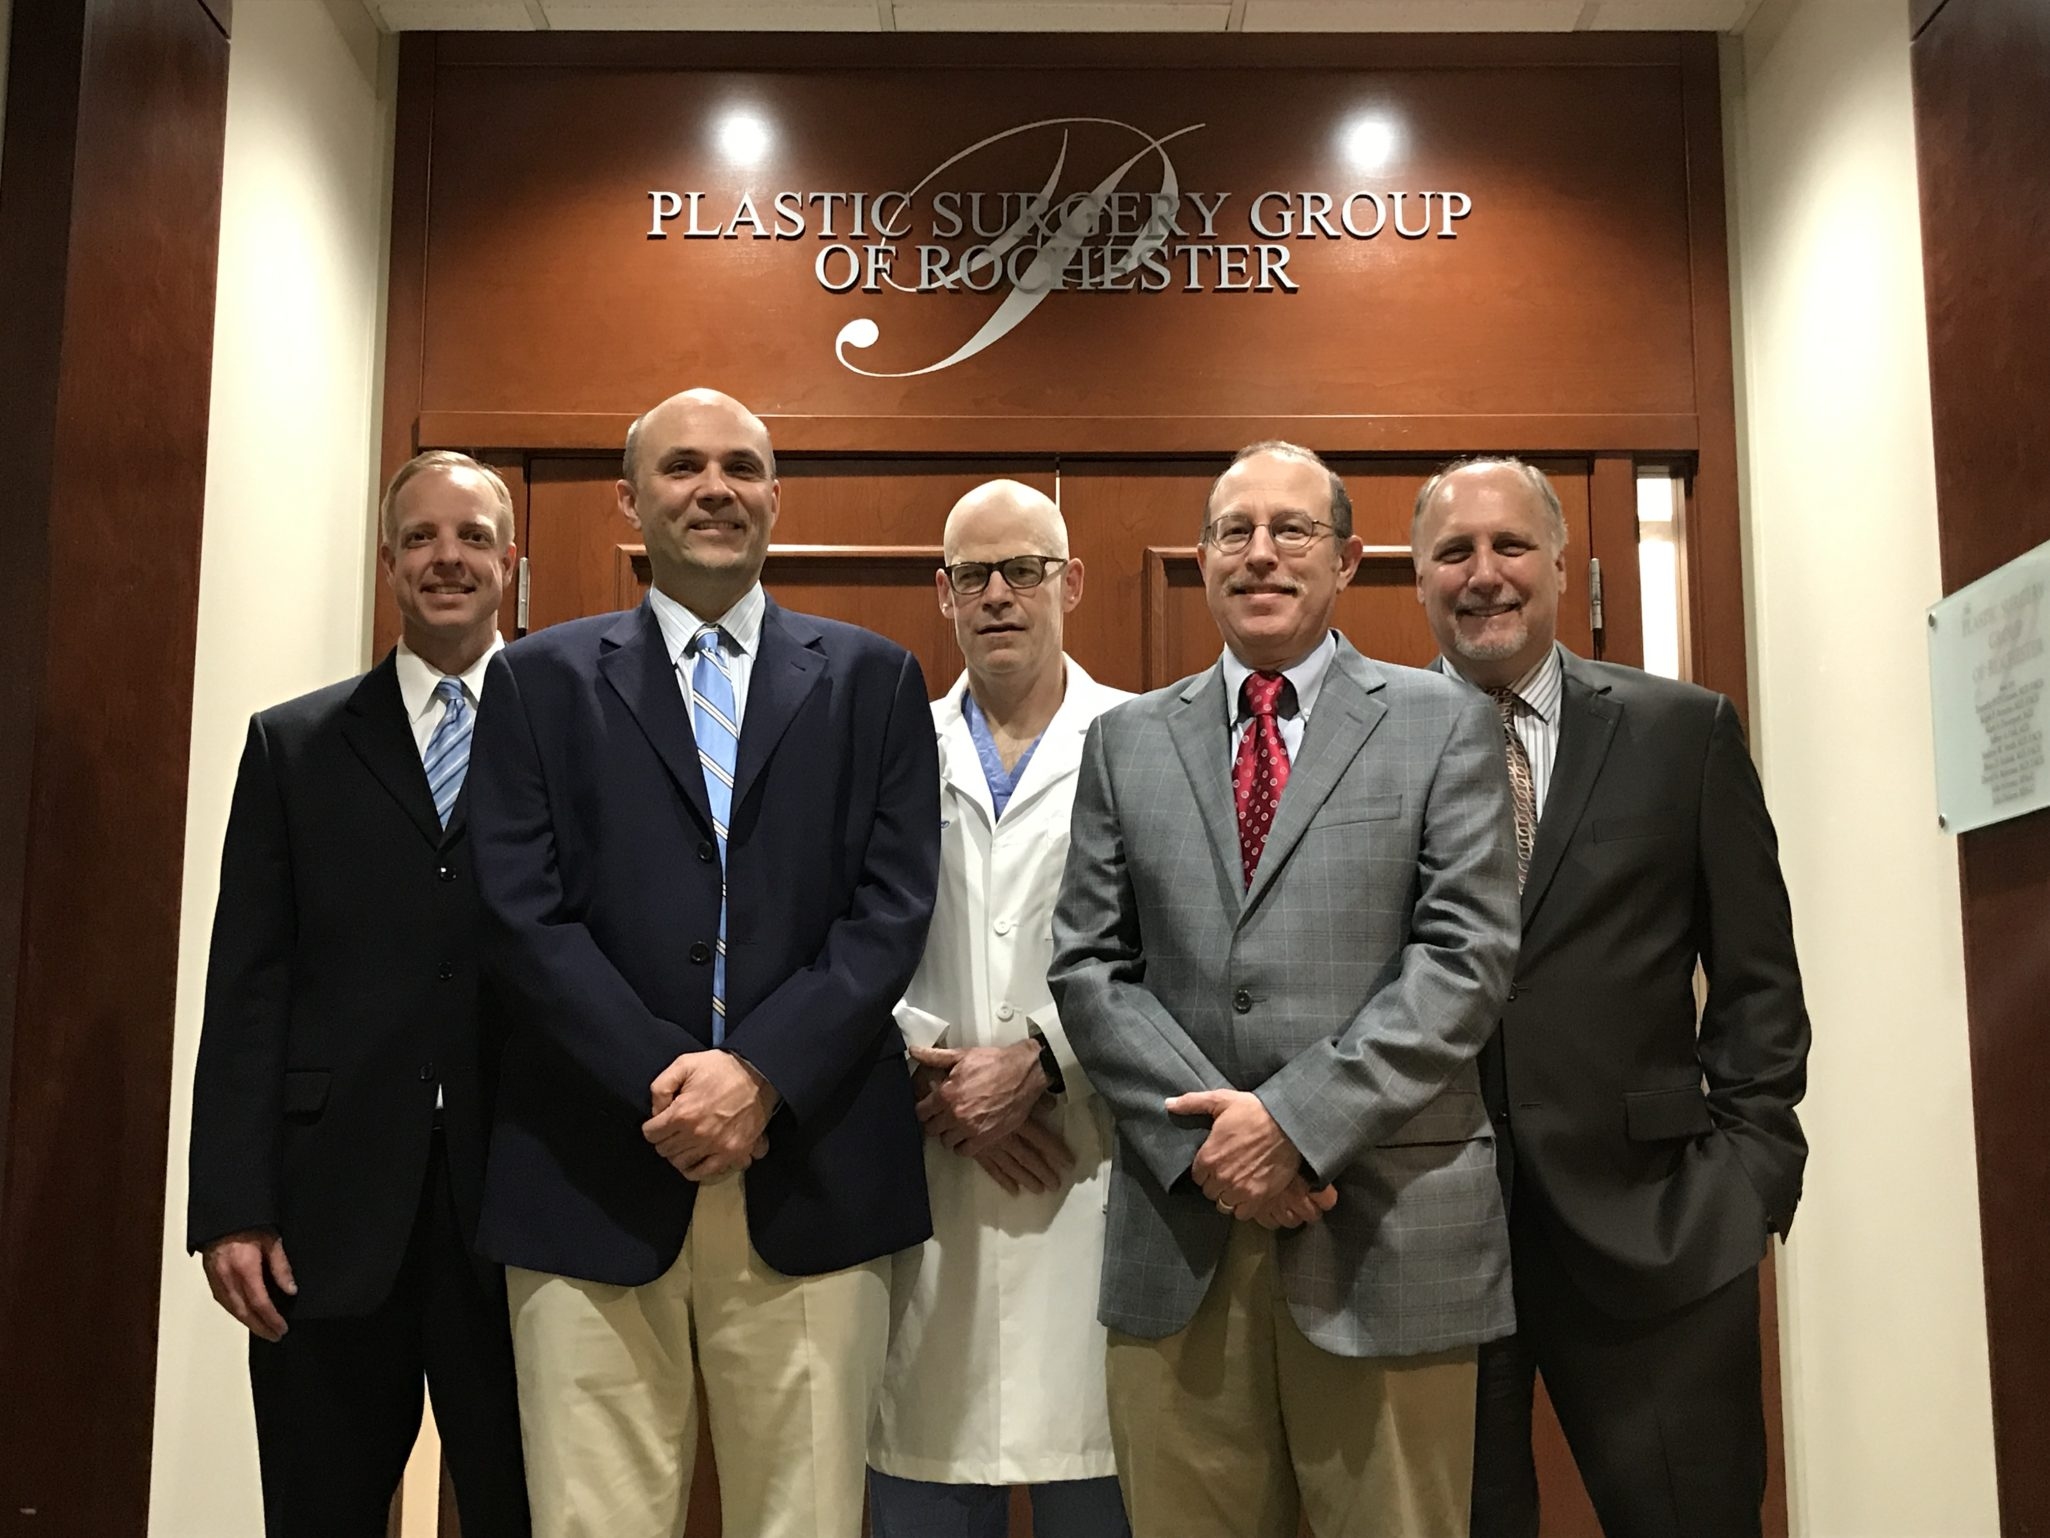 The Plastic Surgery Group of Rochester